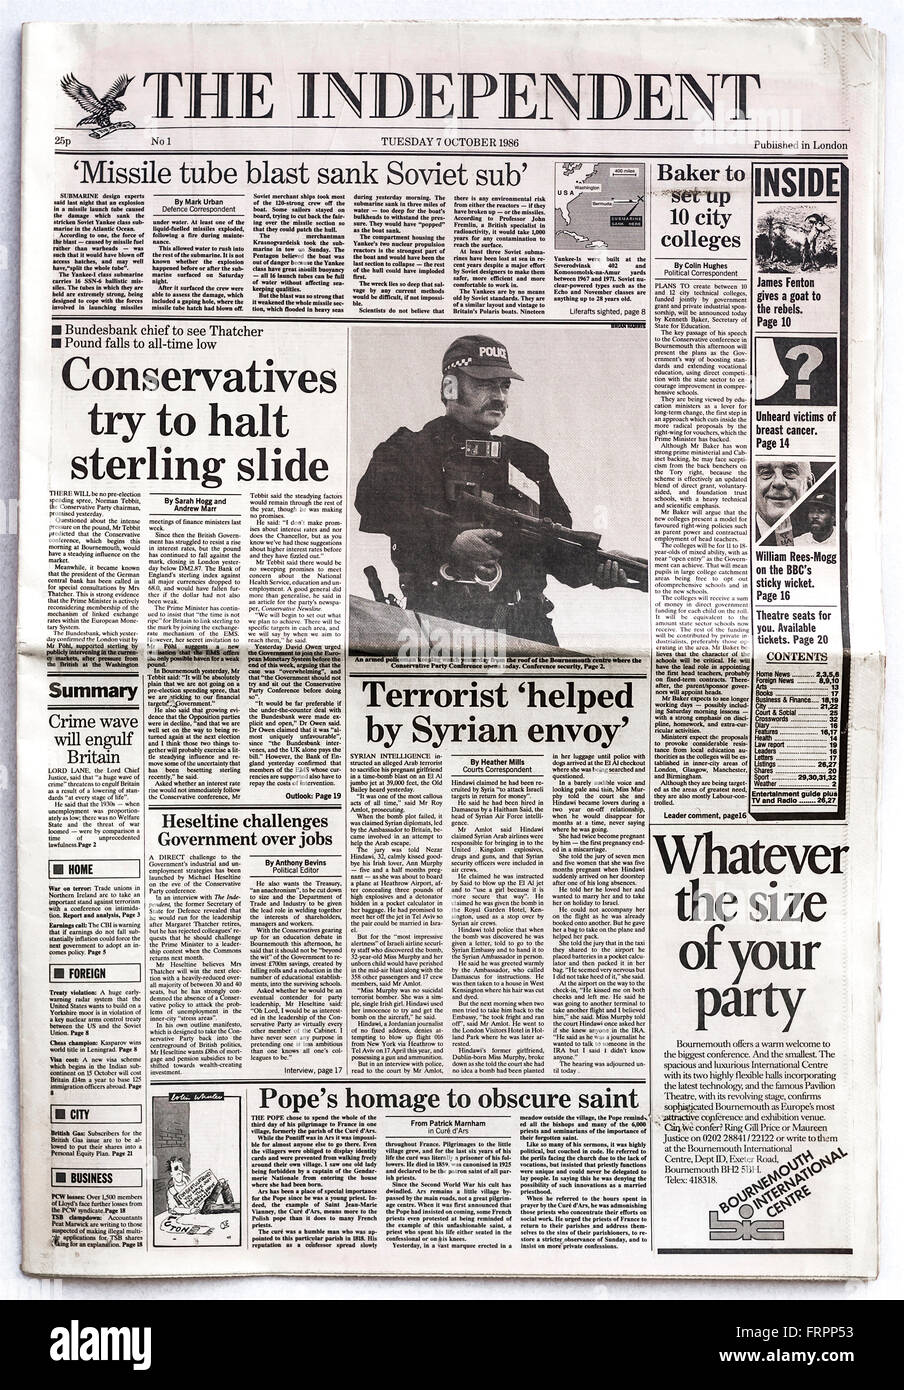 Front page Issue #1 'The Independent' UK national newspaper launched Tuesday 7th October 1986 - 'The - Stock Image